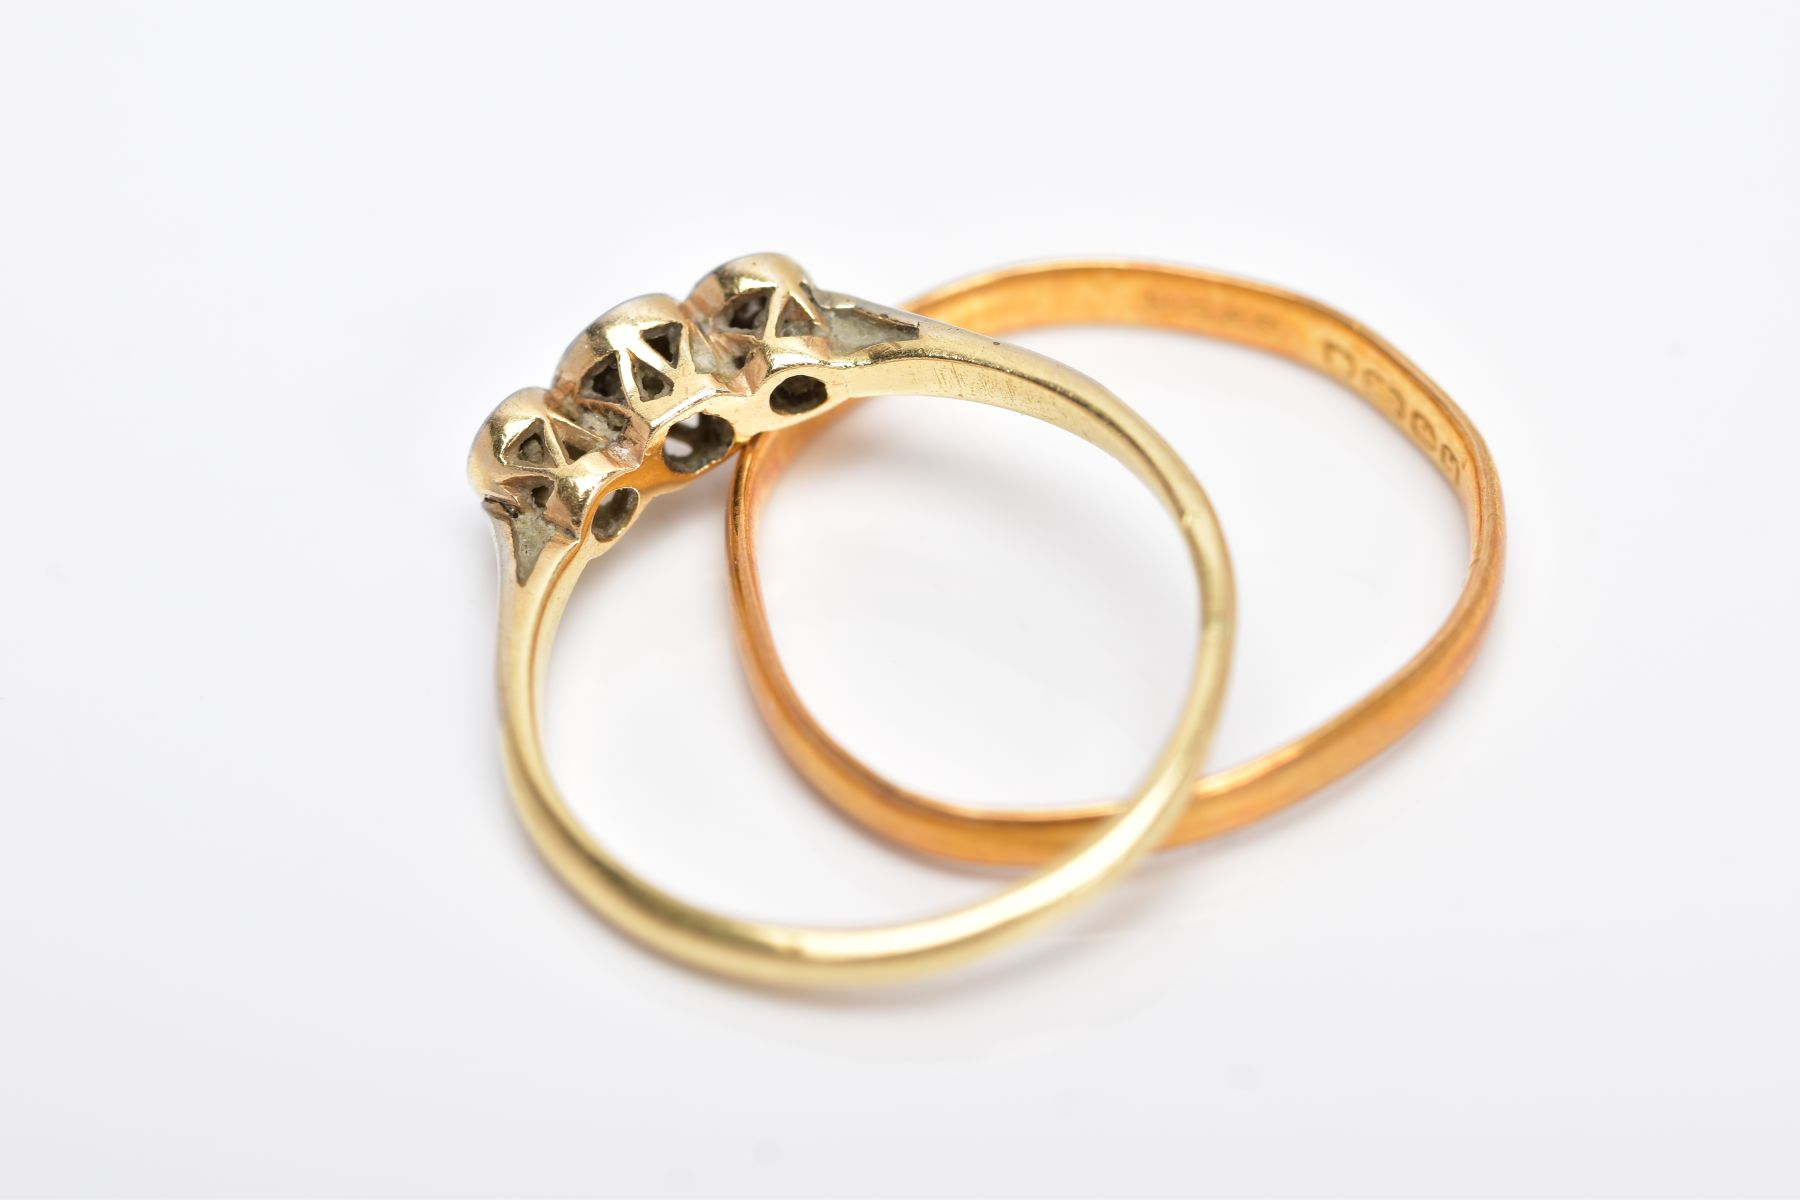 A YELLLOW METAL THREE STONE DIAMOND RING AND A 22CT GOLD BAND, the diamond ring centring on an - Image 3 of 3